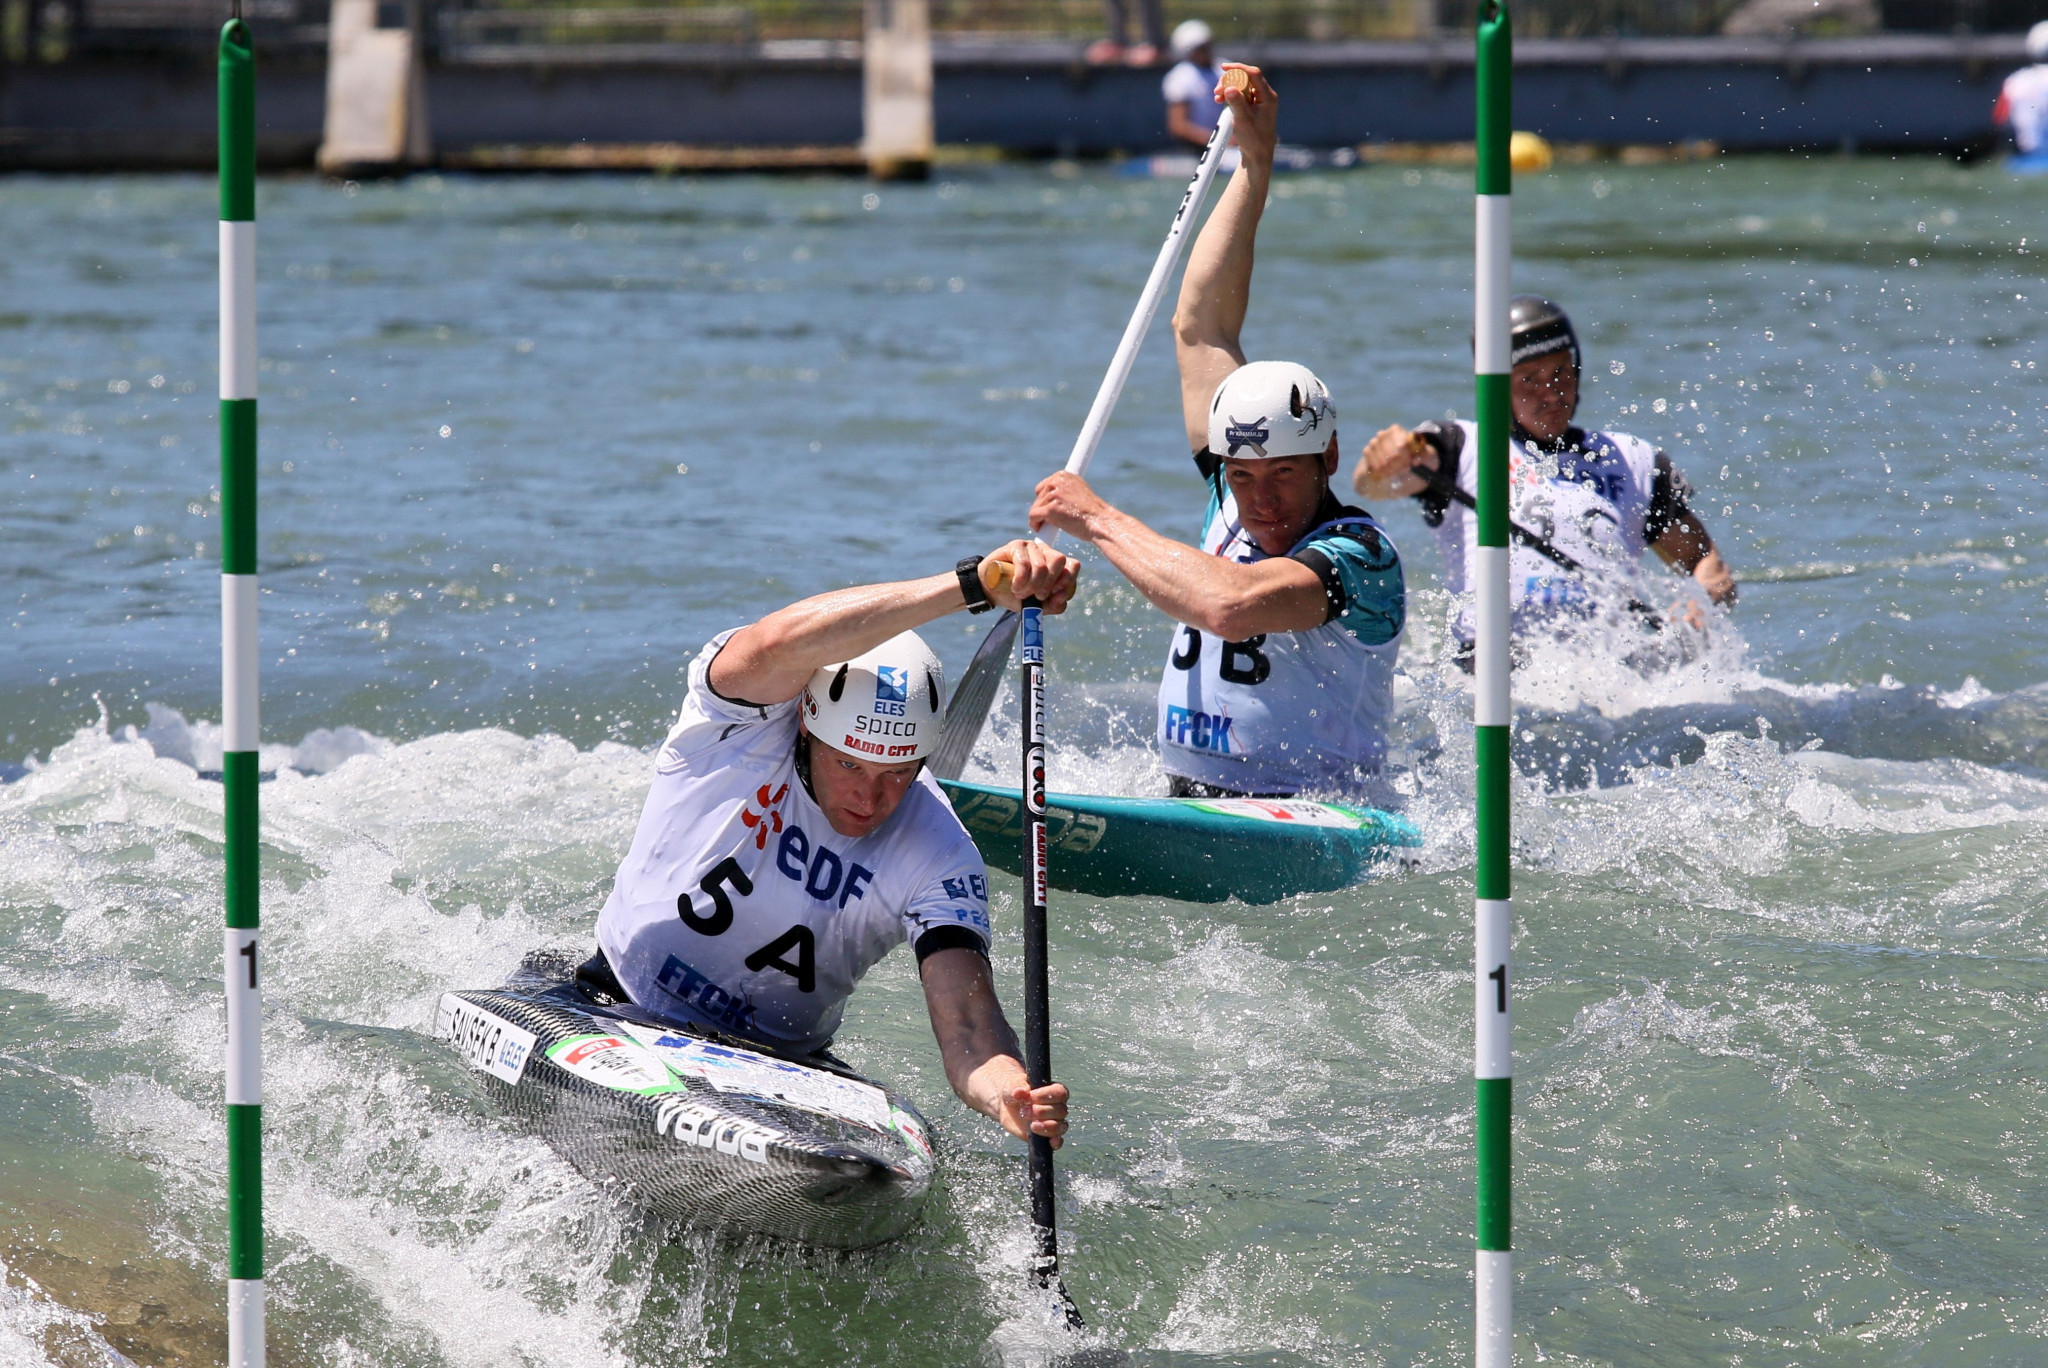 Prague will now stage the event in place of London after British Canoeing forfeited hosting rights in March ©Getty Images